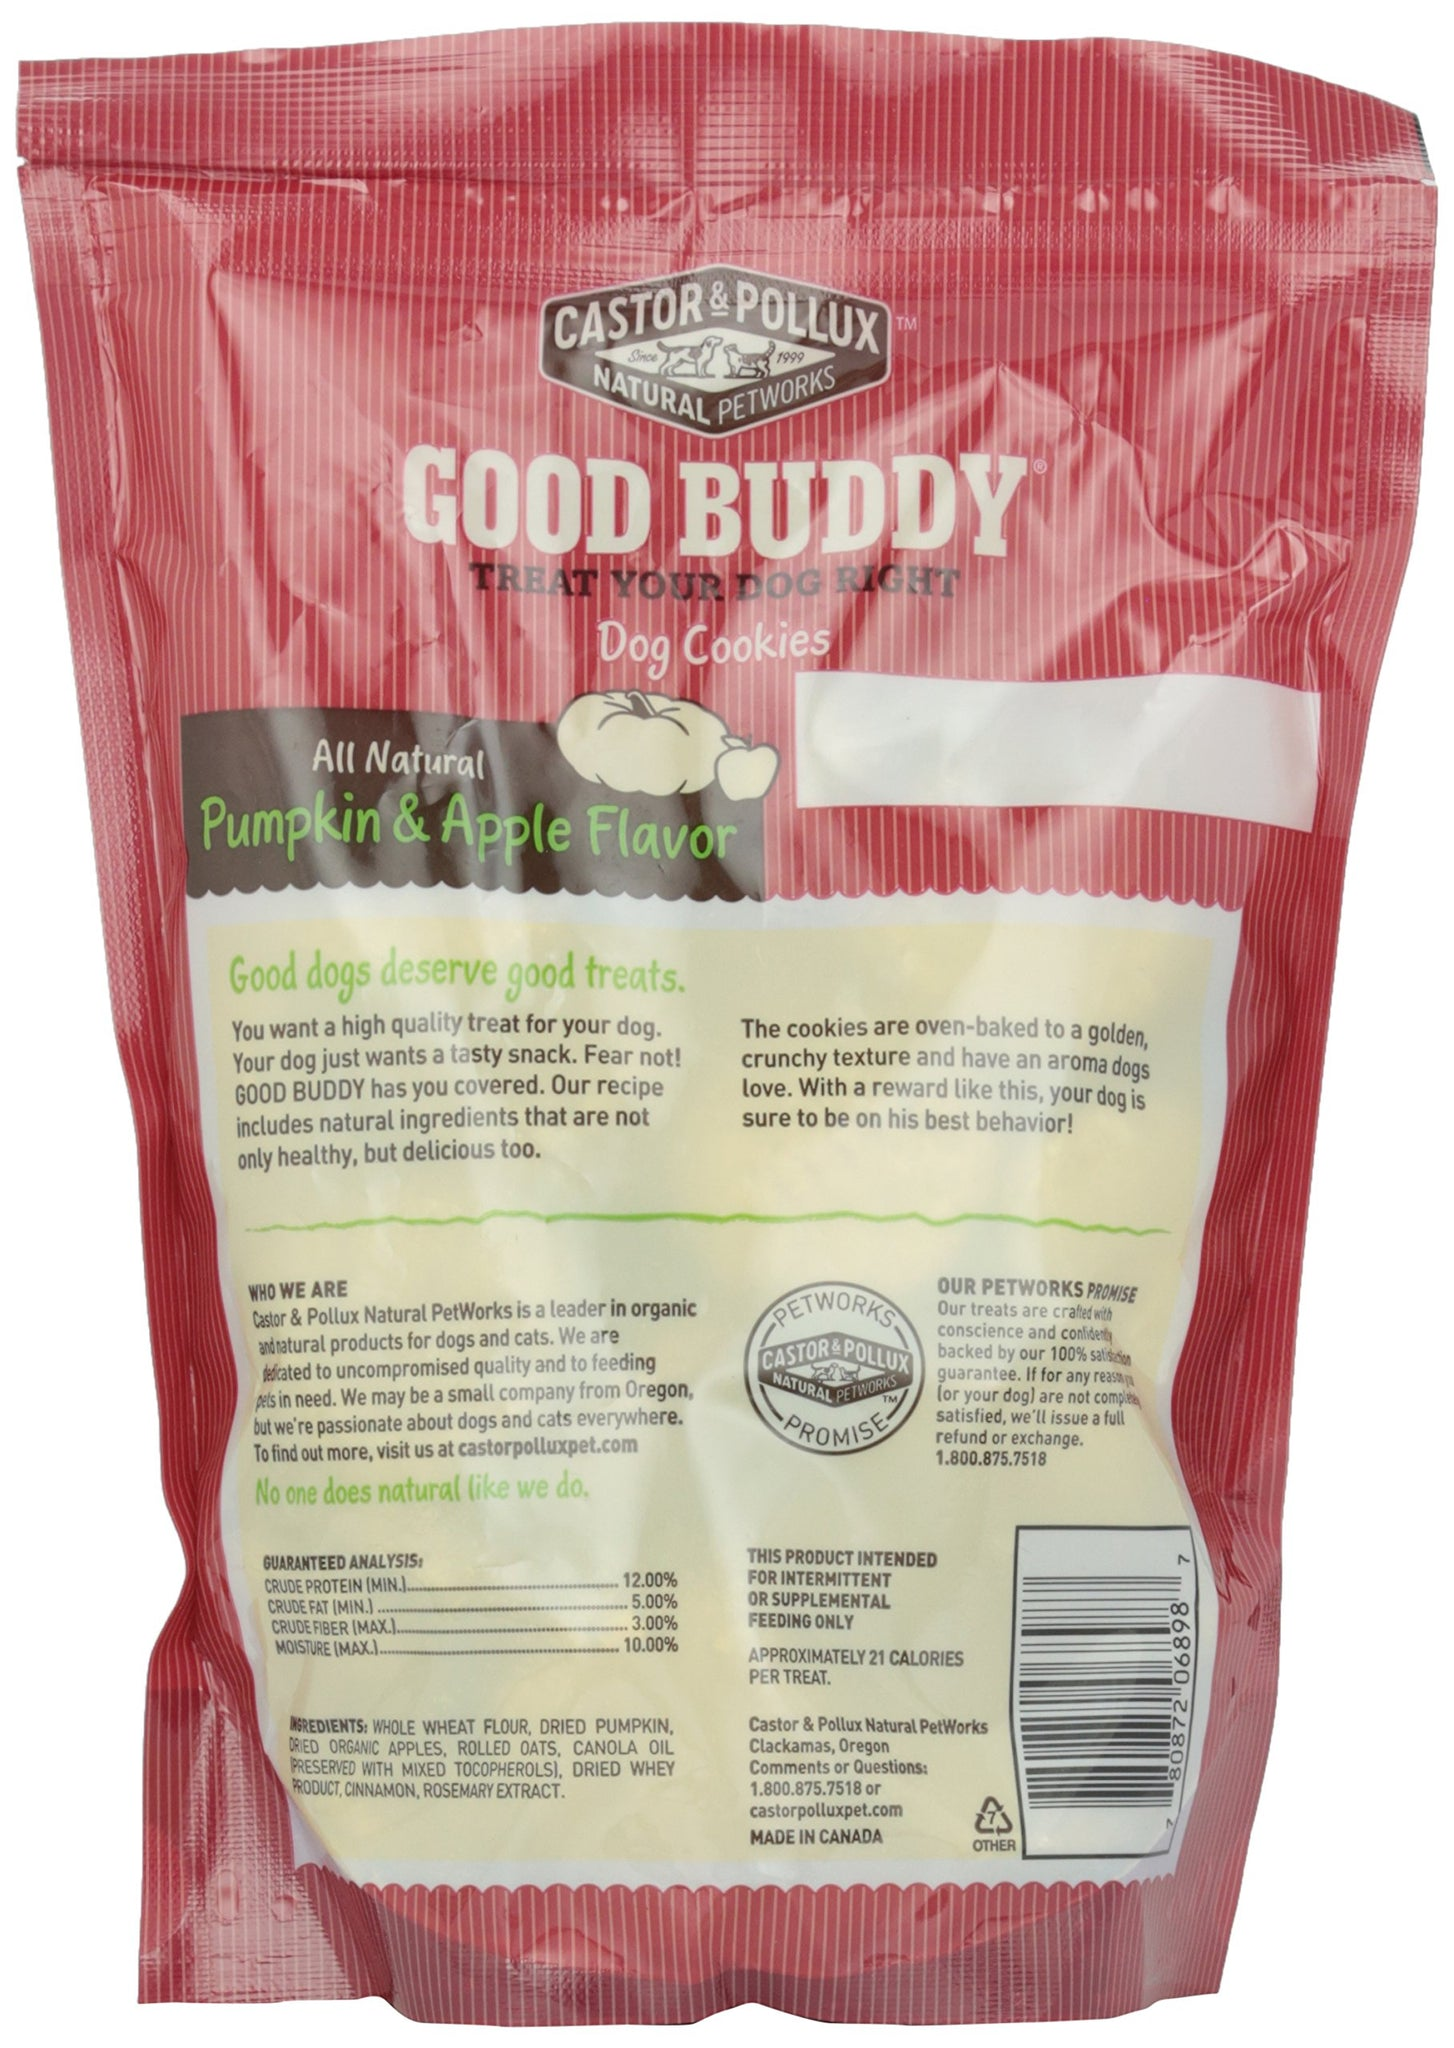 Good Buddy, Pumpkin & Apple Cookies, 16 oz, Dog Treats, [wellica]